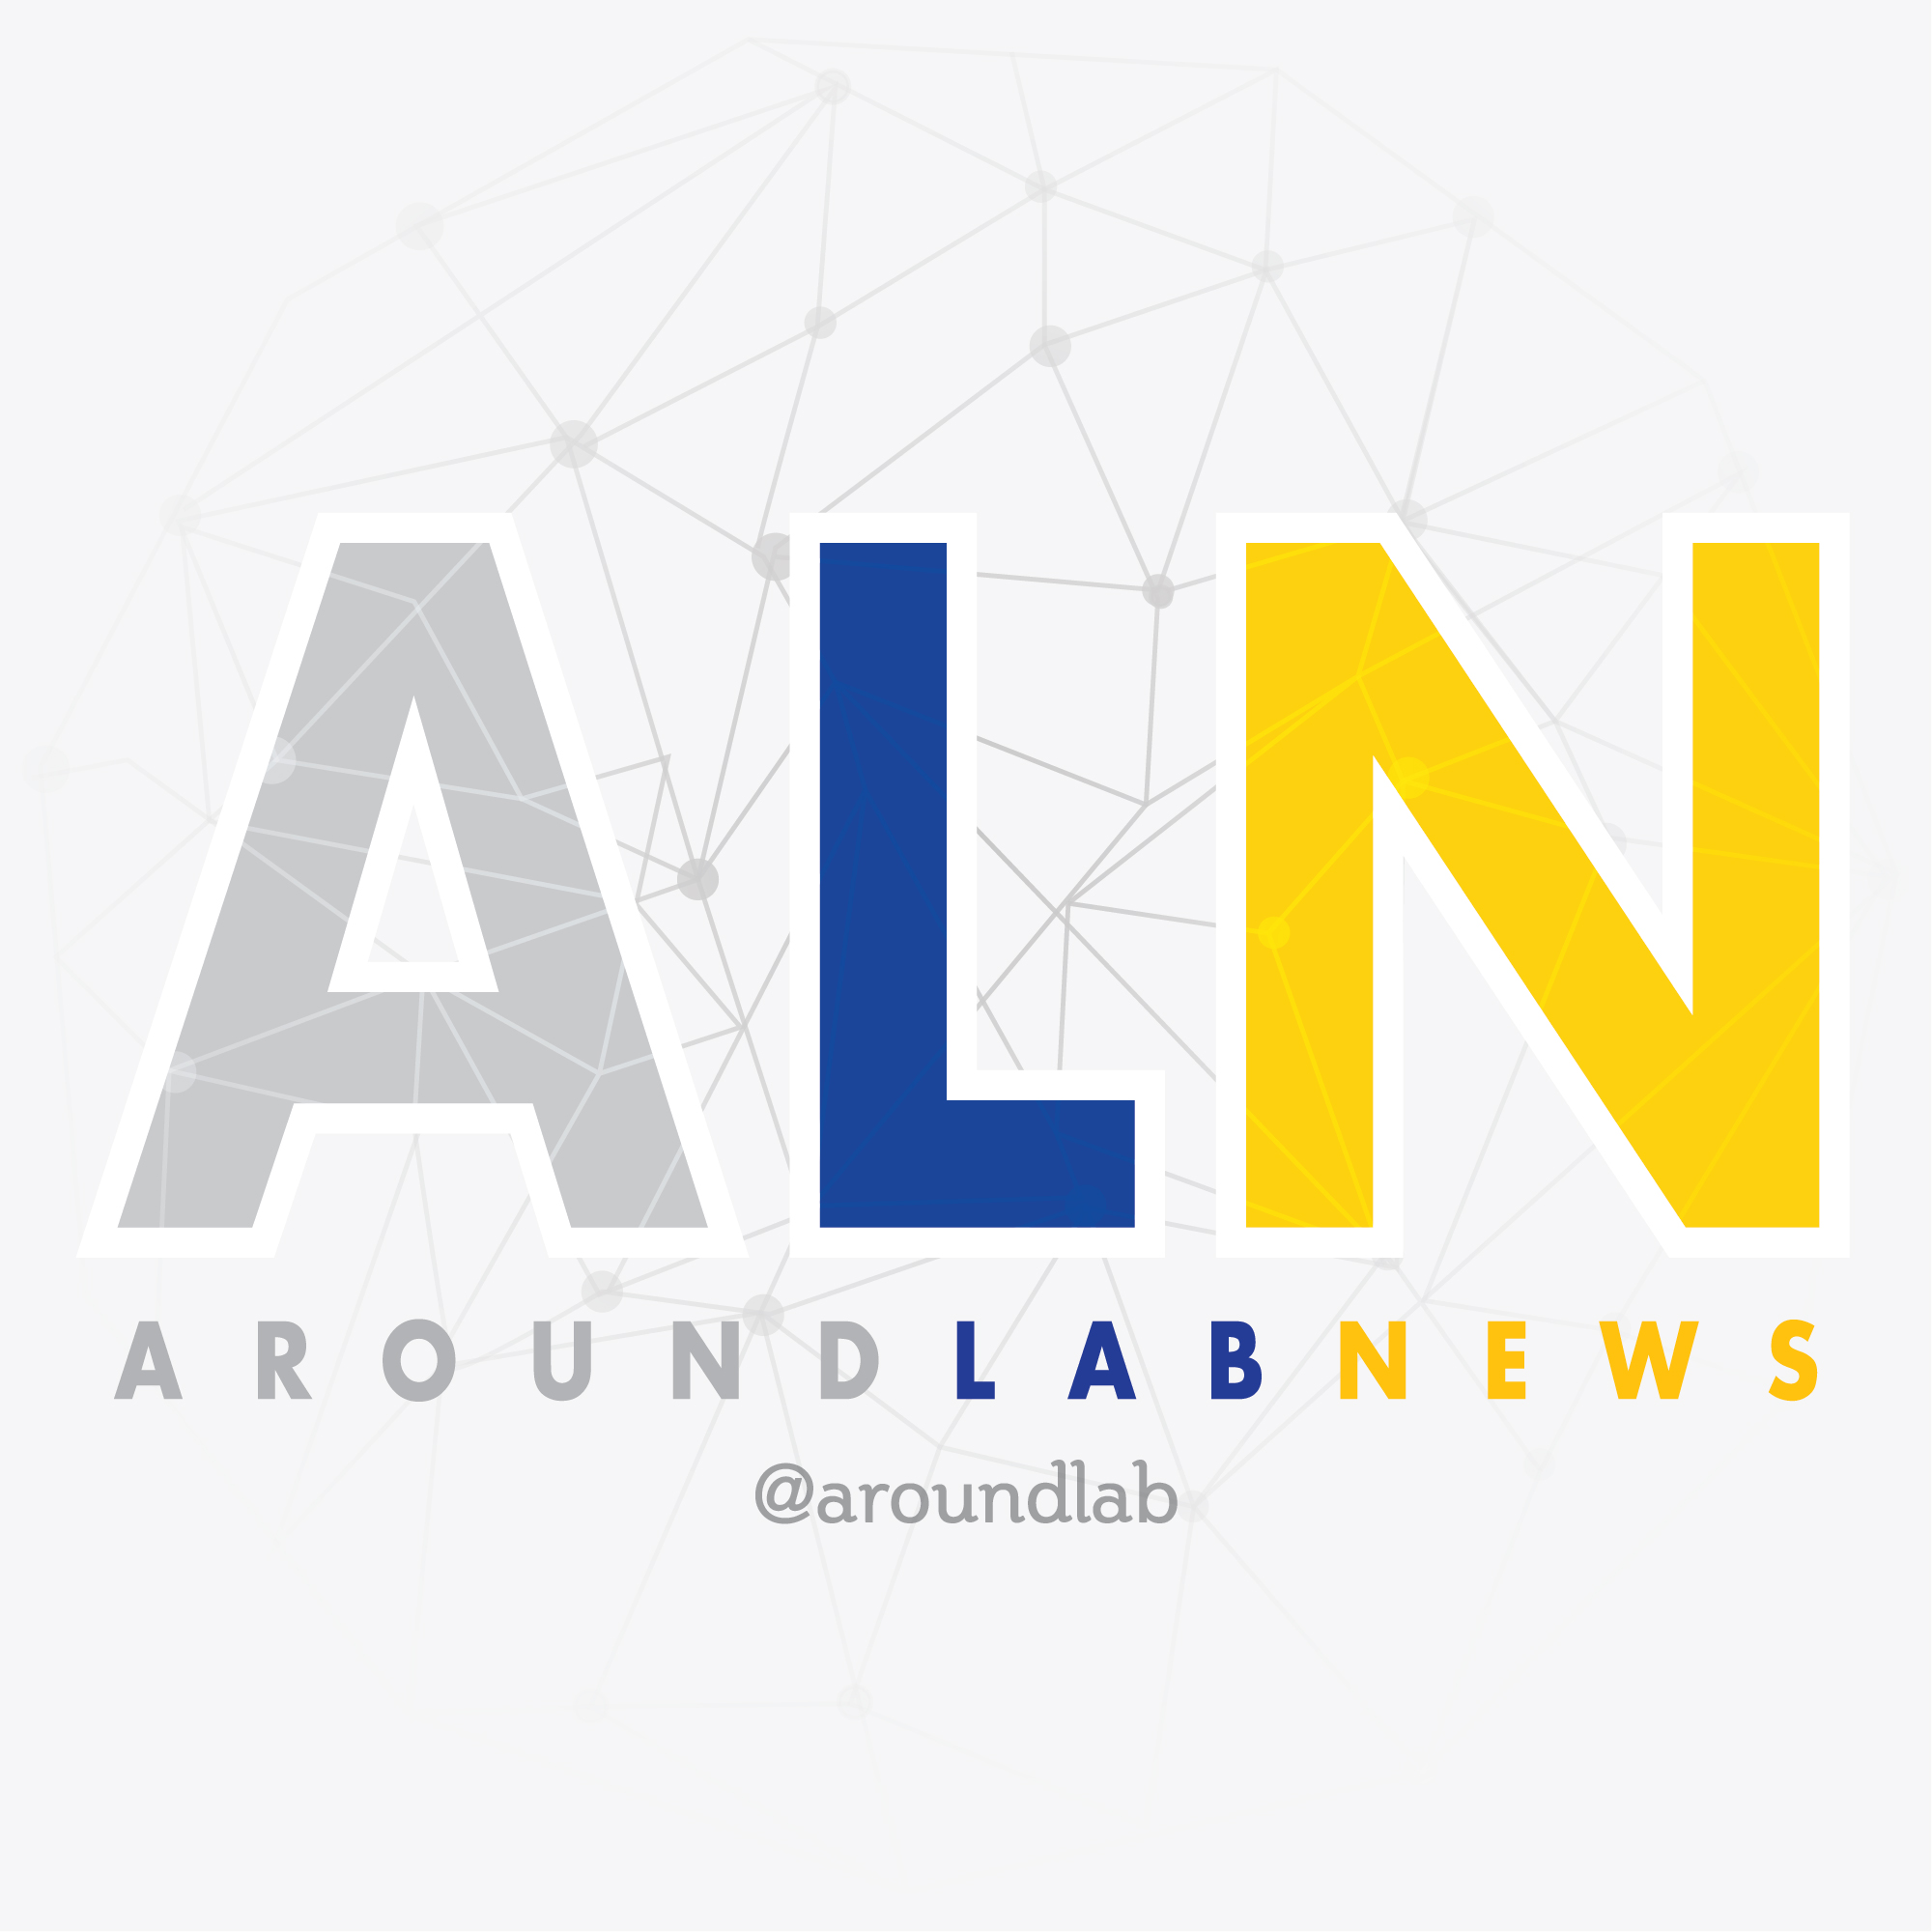 AROUND LAB NEWS